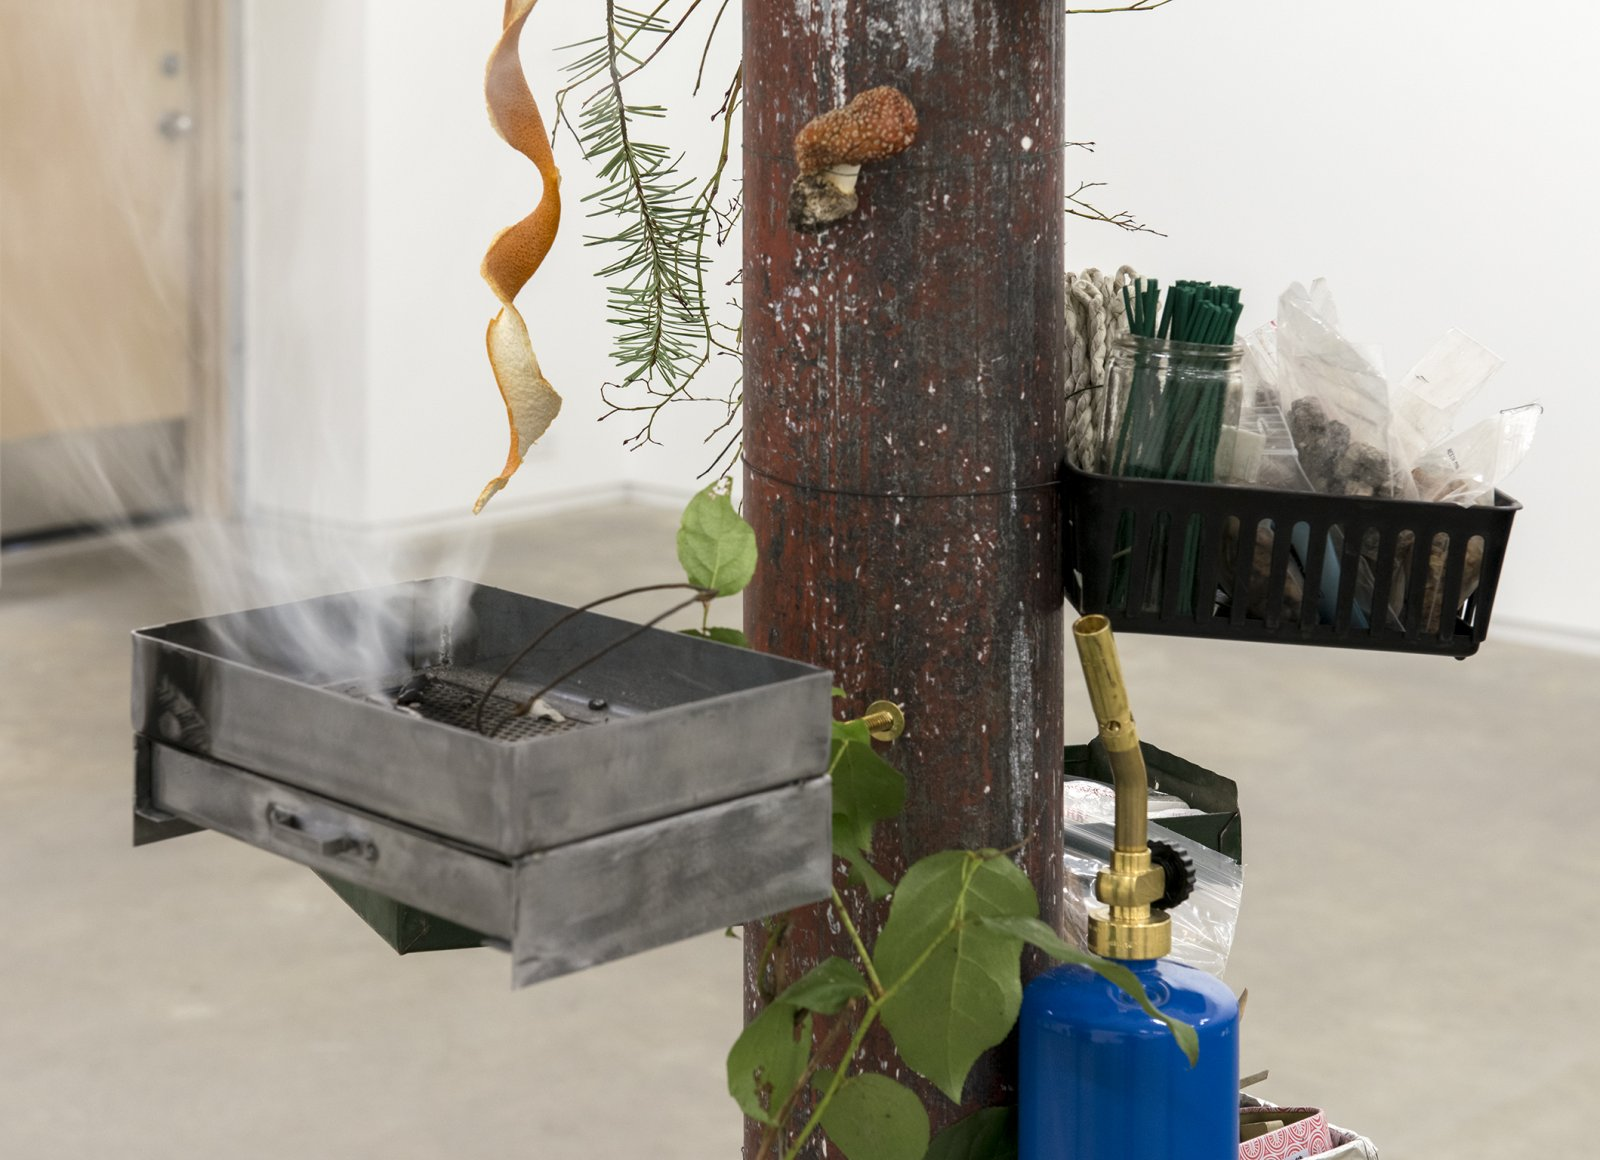 Gareth Moore, installation view, Household Temple Yard, Catriona Jeffries, 2013 ​​ by Ashes Withyman